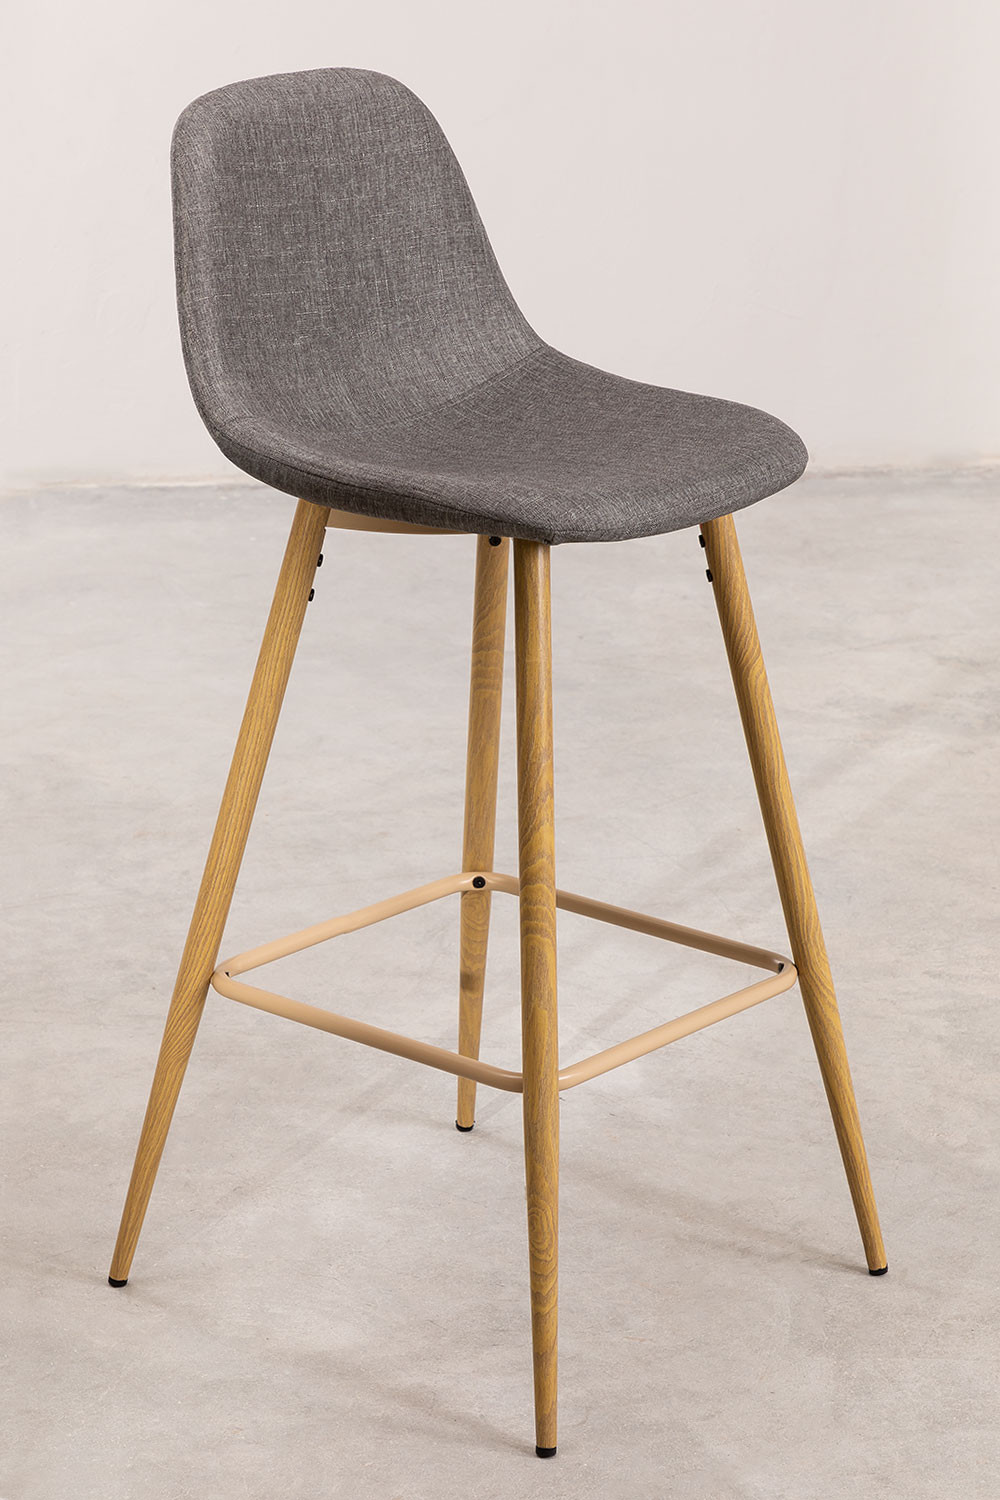 Pack 4 High Stools in Linen Glamm, gallery image 1